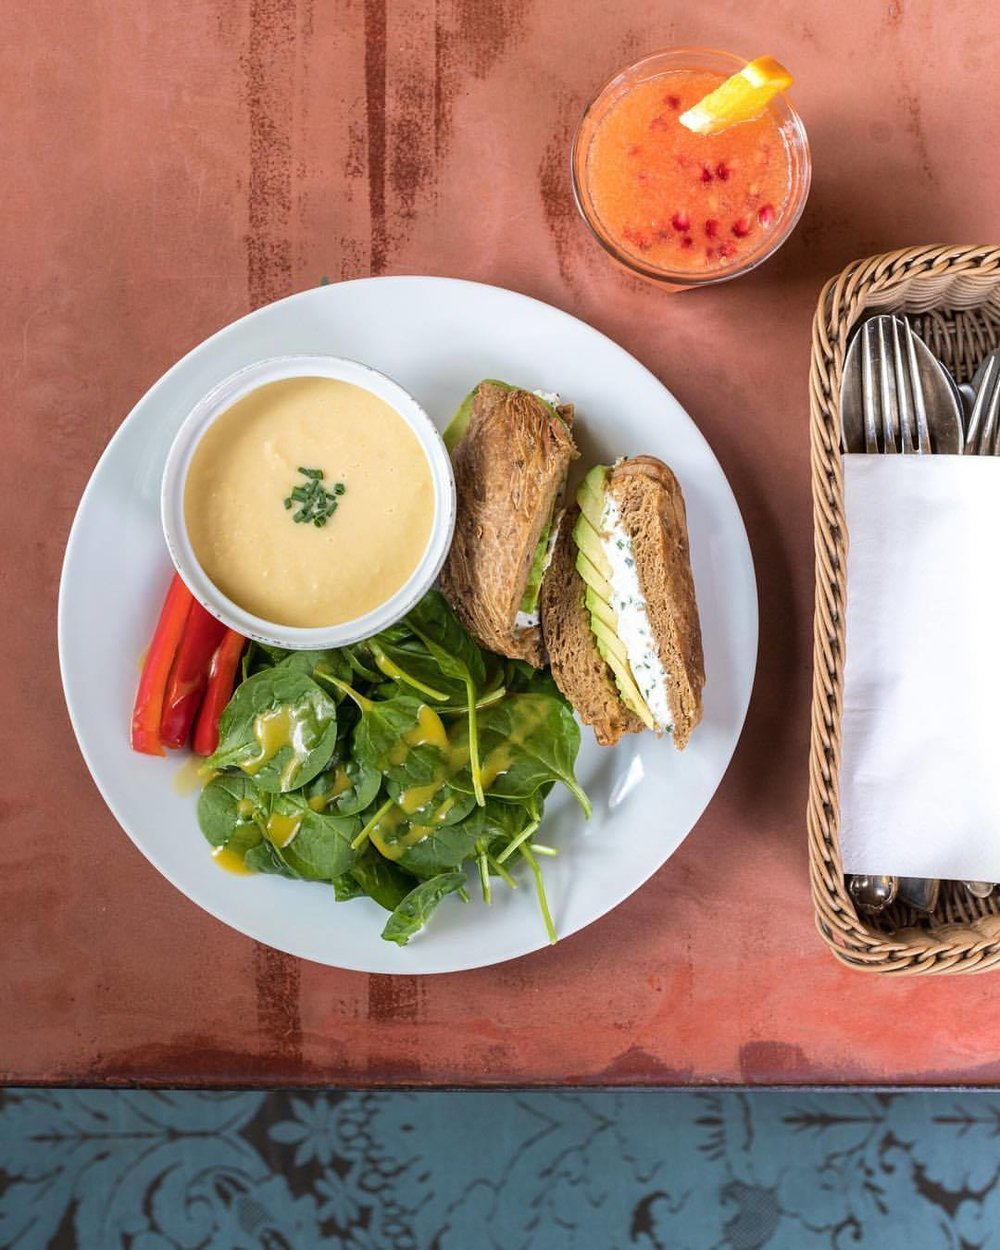 Sandwiches, salad and juice at House of small wonder